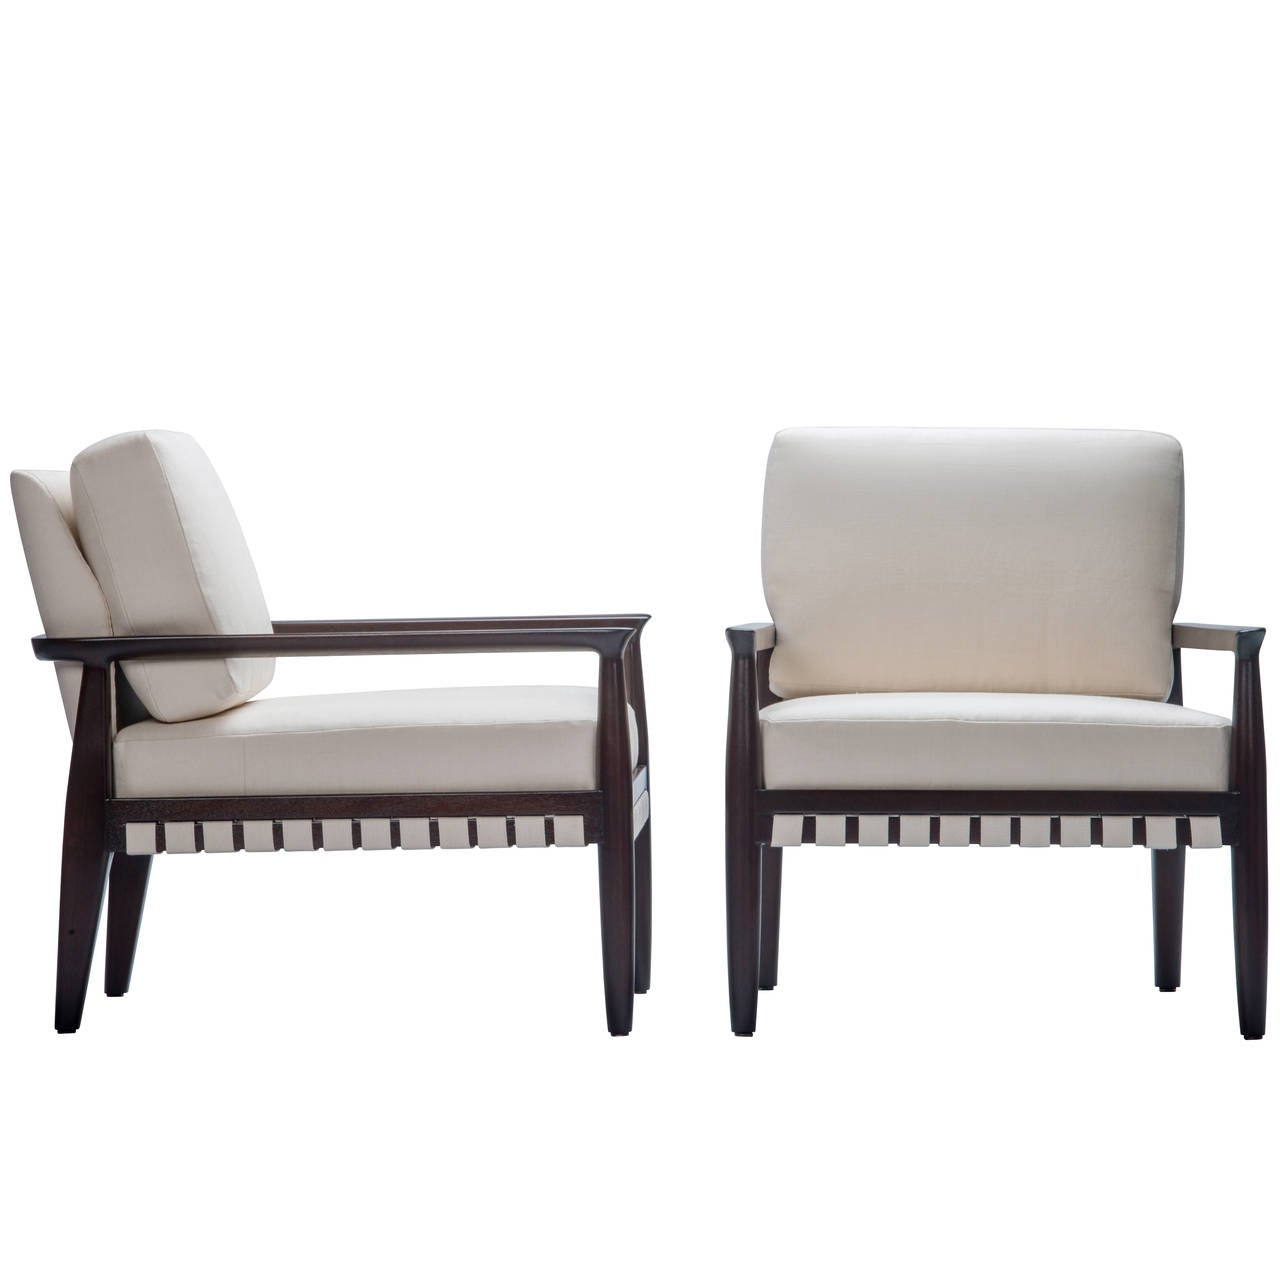 Pair of Tommi Parzinger Lounge Chairs for Charak Modern